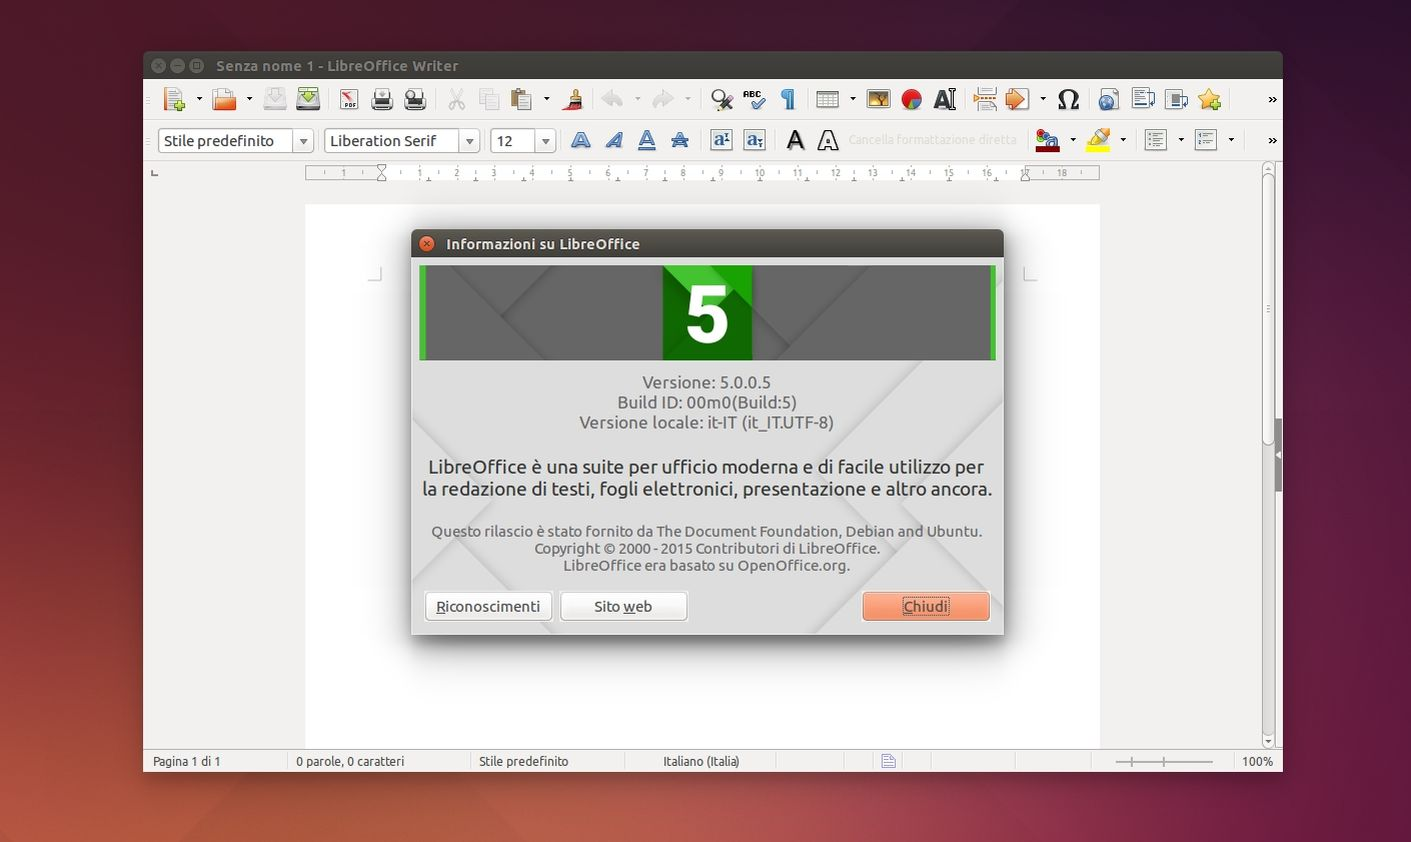 LibreOffice 5.0